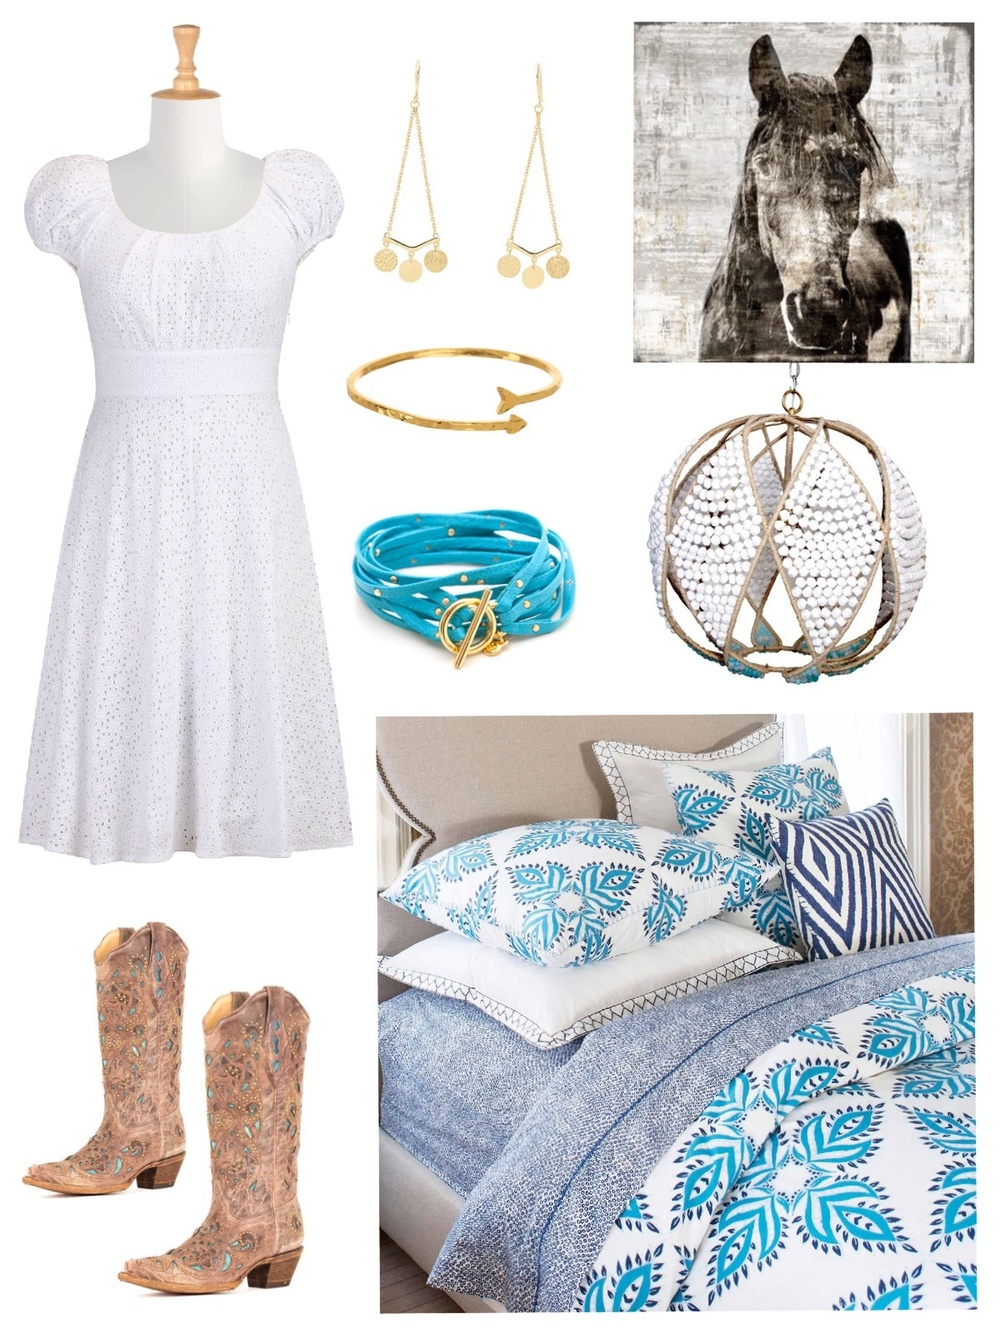 Available through Savvy: jewelry, artwork, chandelier, bedding / Dress: Anthropologie / Boots: Country Outfitter